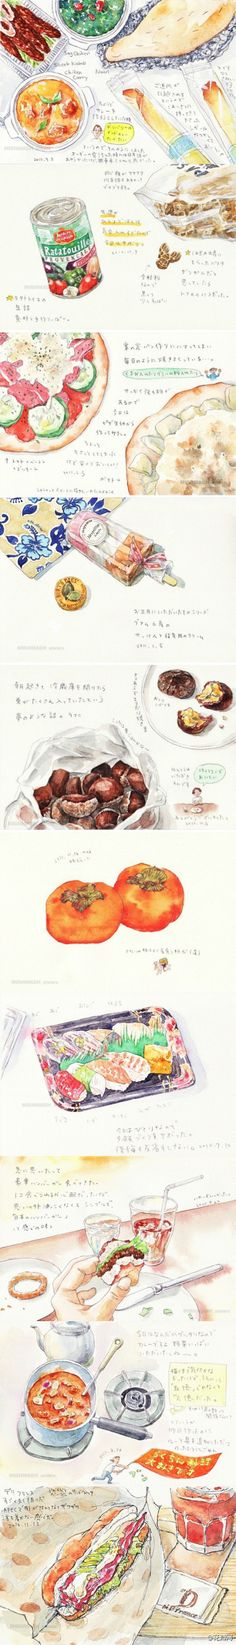 Imagine how delicious looking and beautiful a food drawing with these illustrations in them every day would be ^_^